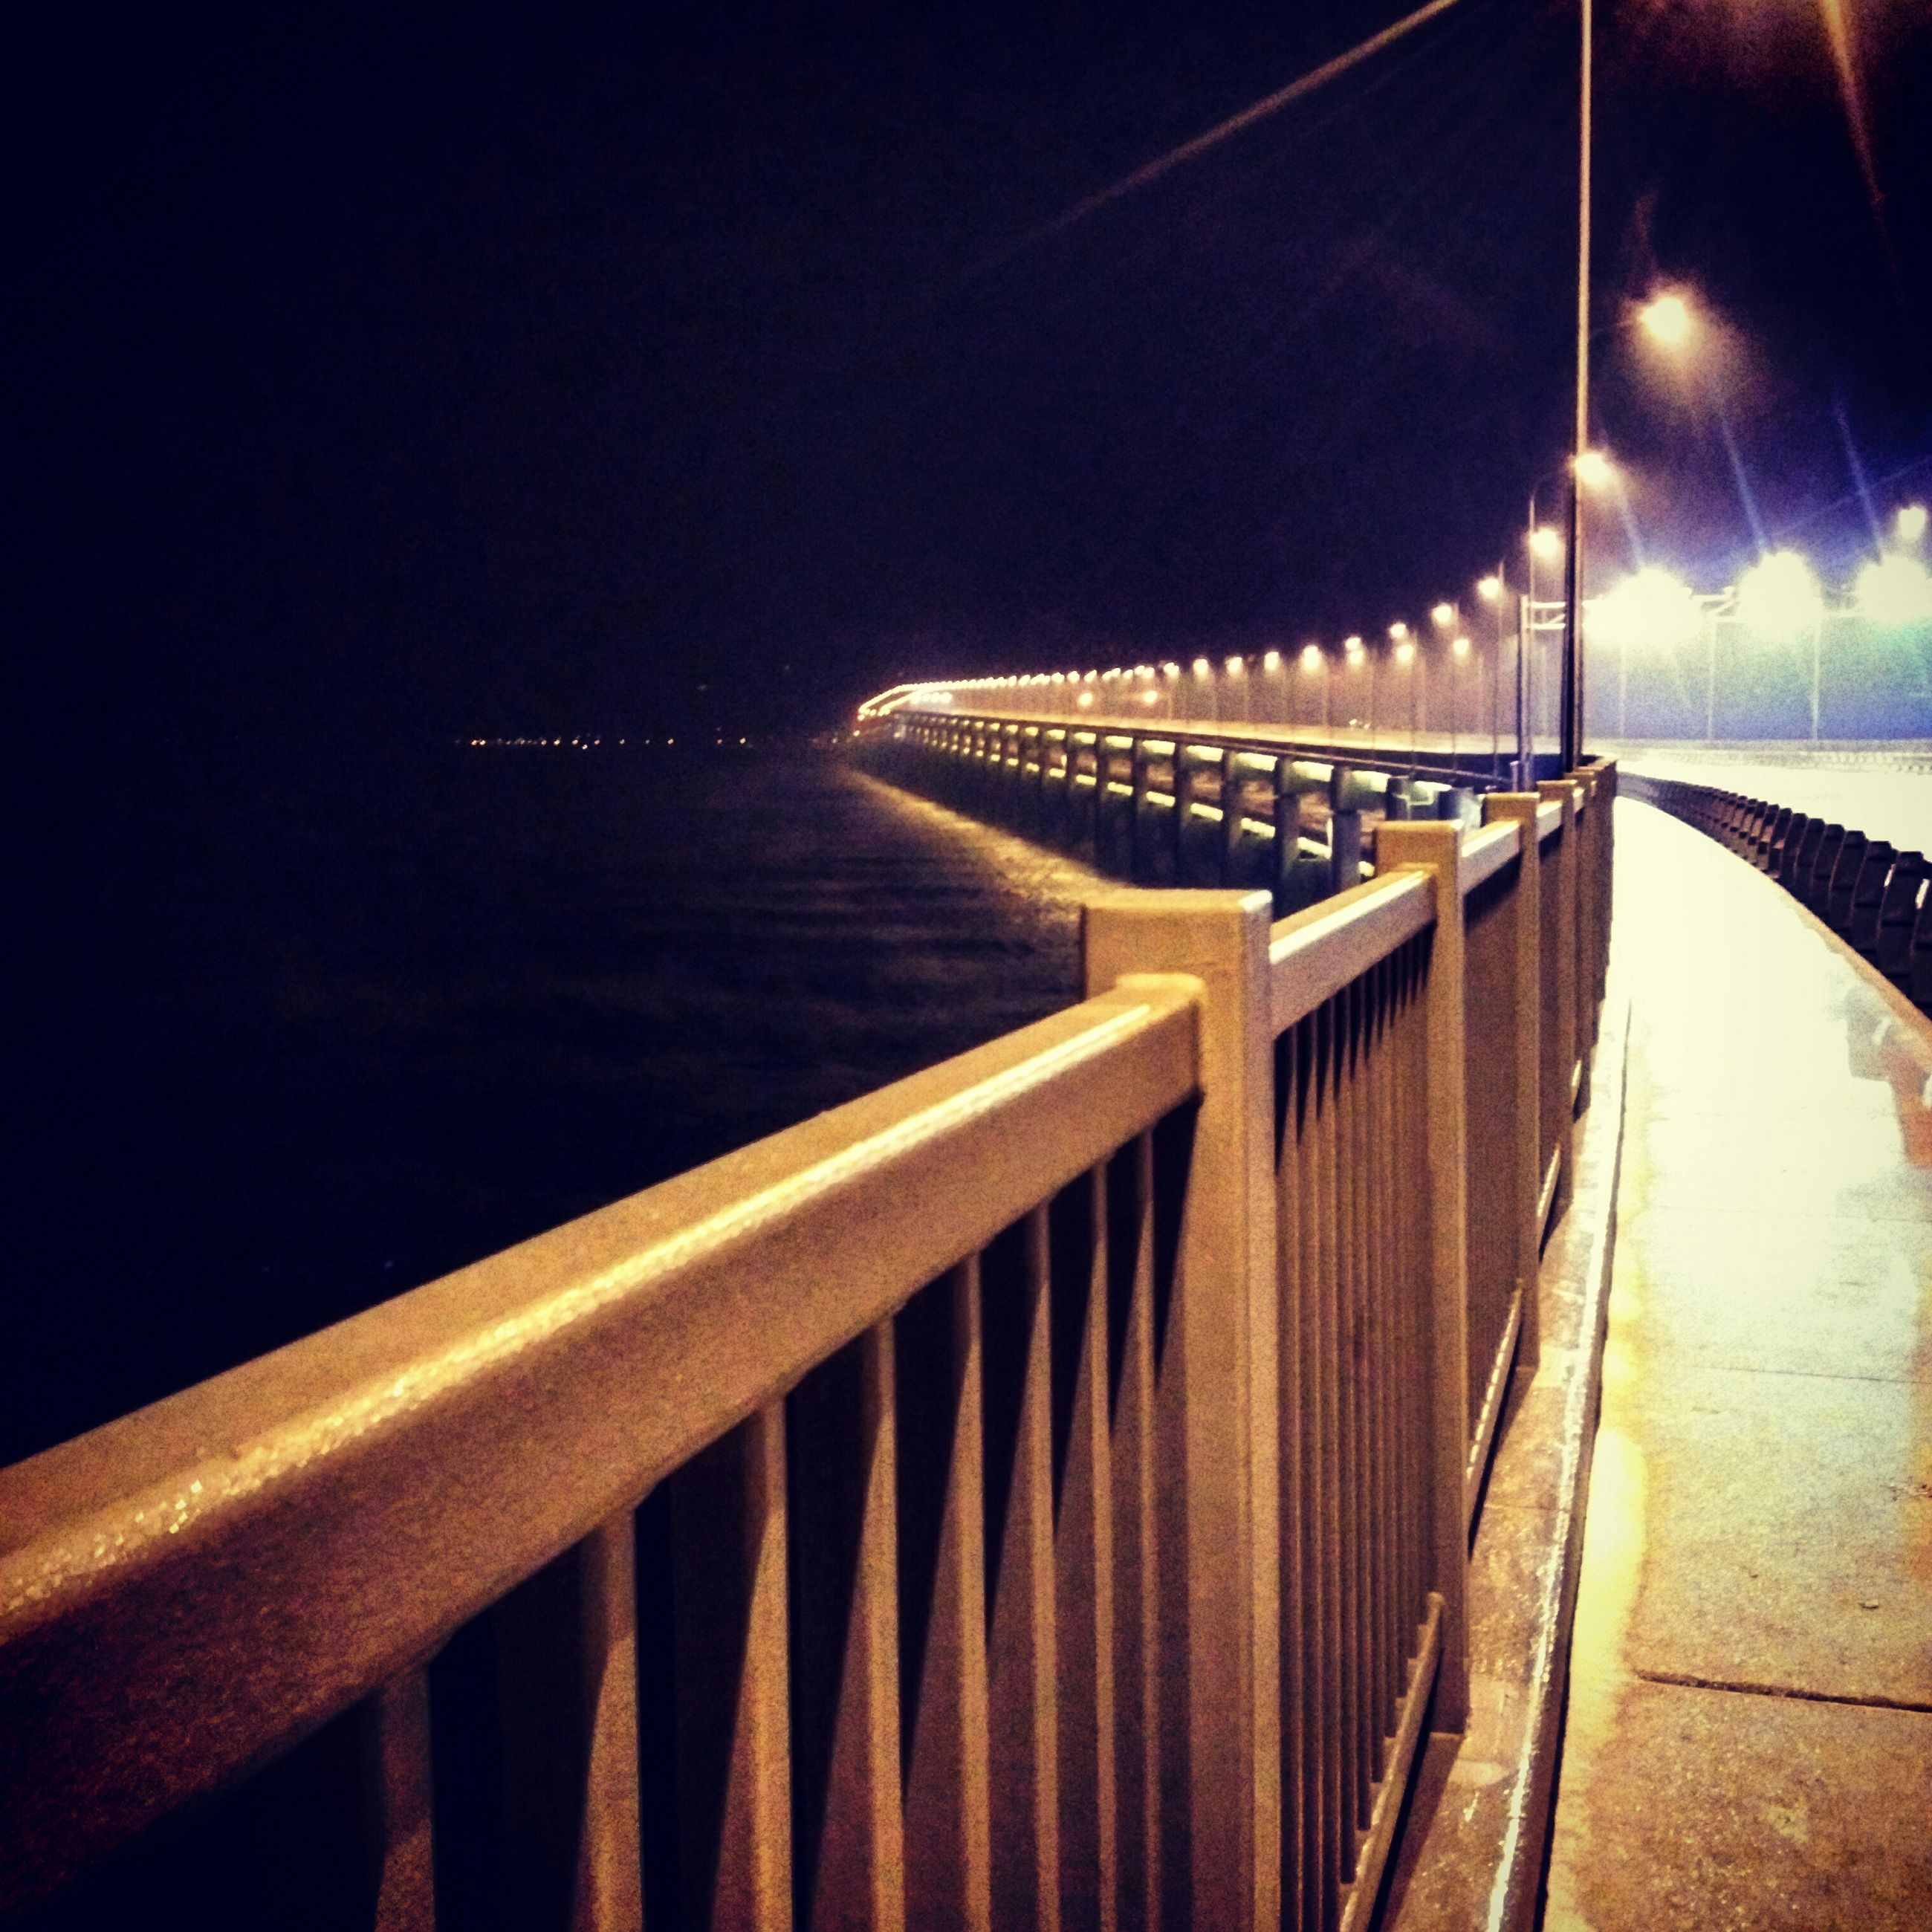 illuminated, transportation, railing, the way forward, night, built structure, empty, diminishing perspective, architecture, connection, long, water, no people, bridge - man made structure, absence, pier, lighting equipment, bridge, outdoors, copy space